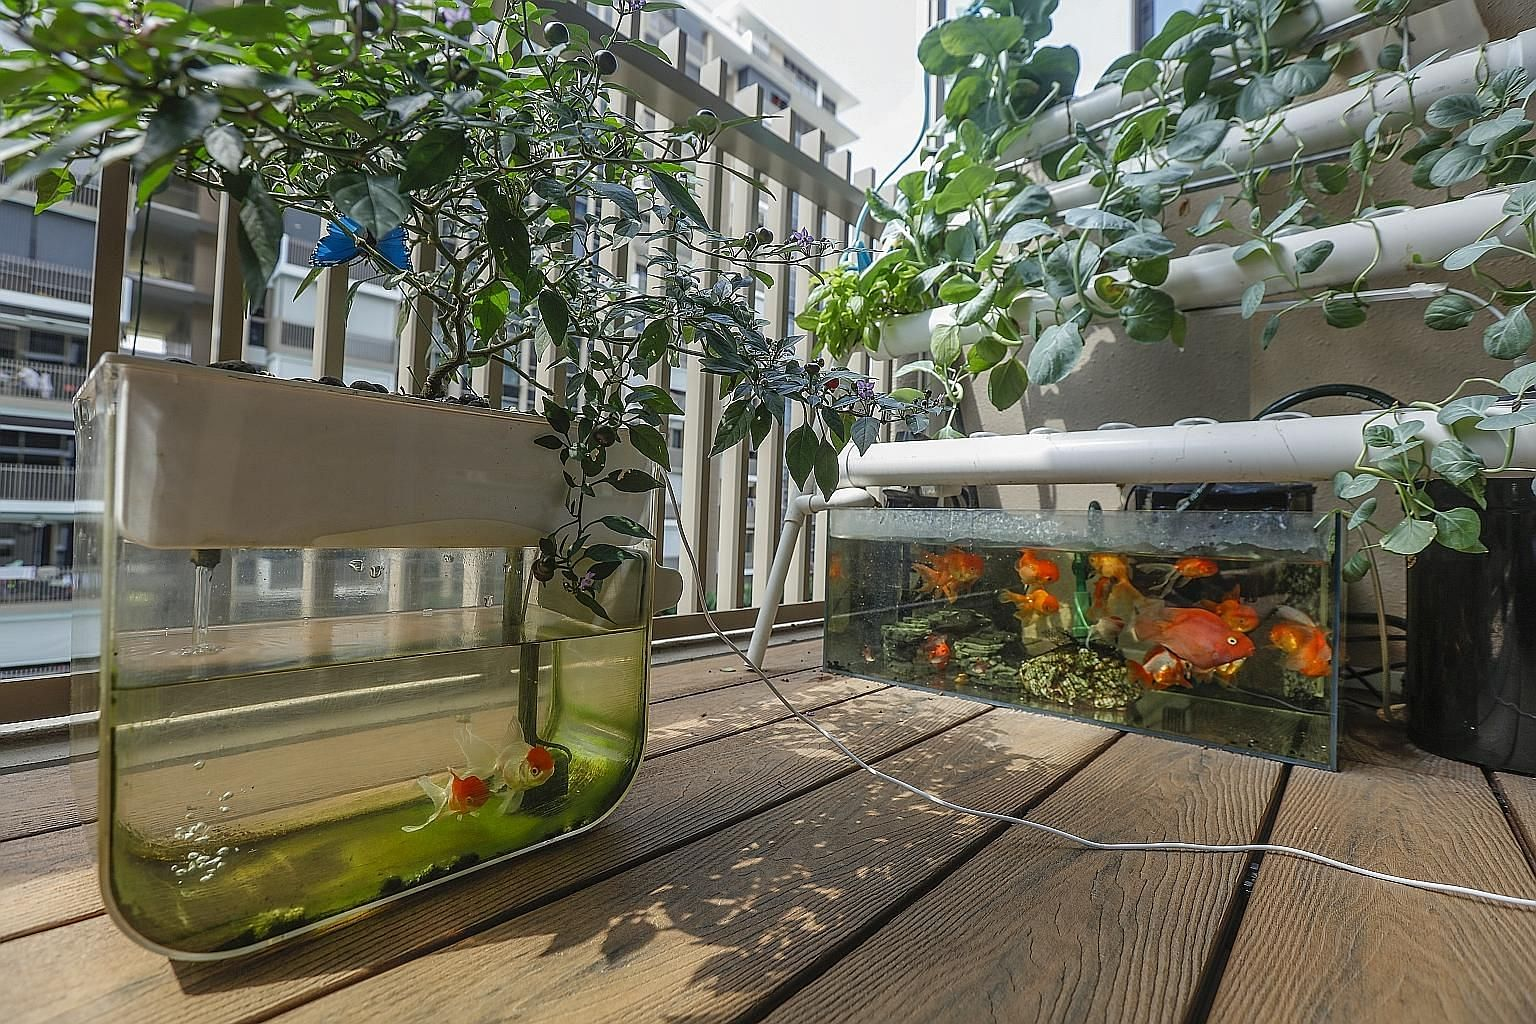 Dr Lim Jia Yang's aquaponics set-up - made up of a special pump, PVC pipes and a fish tank - in the balcony of his Sengkang home. He is working on creating a larger aquaponics centre at the Medical Alumni Association, with harvested vegetables to be